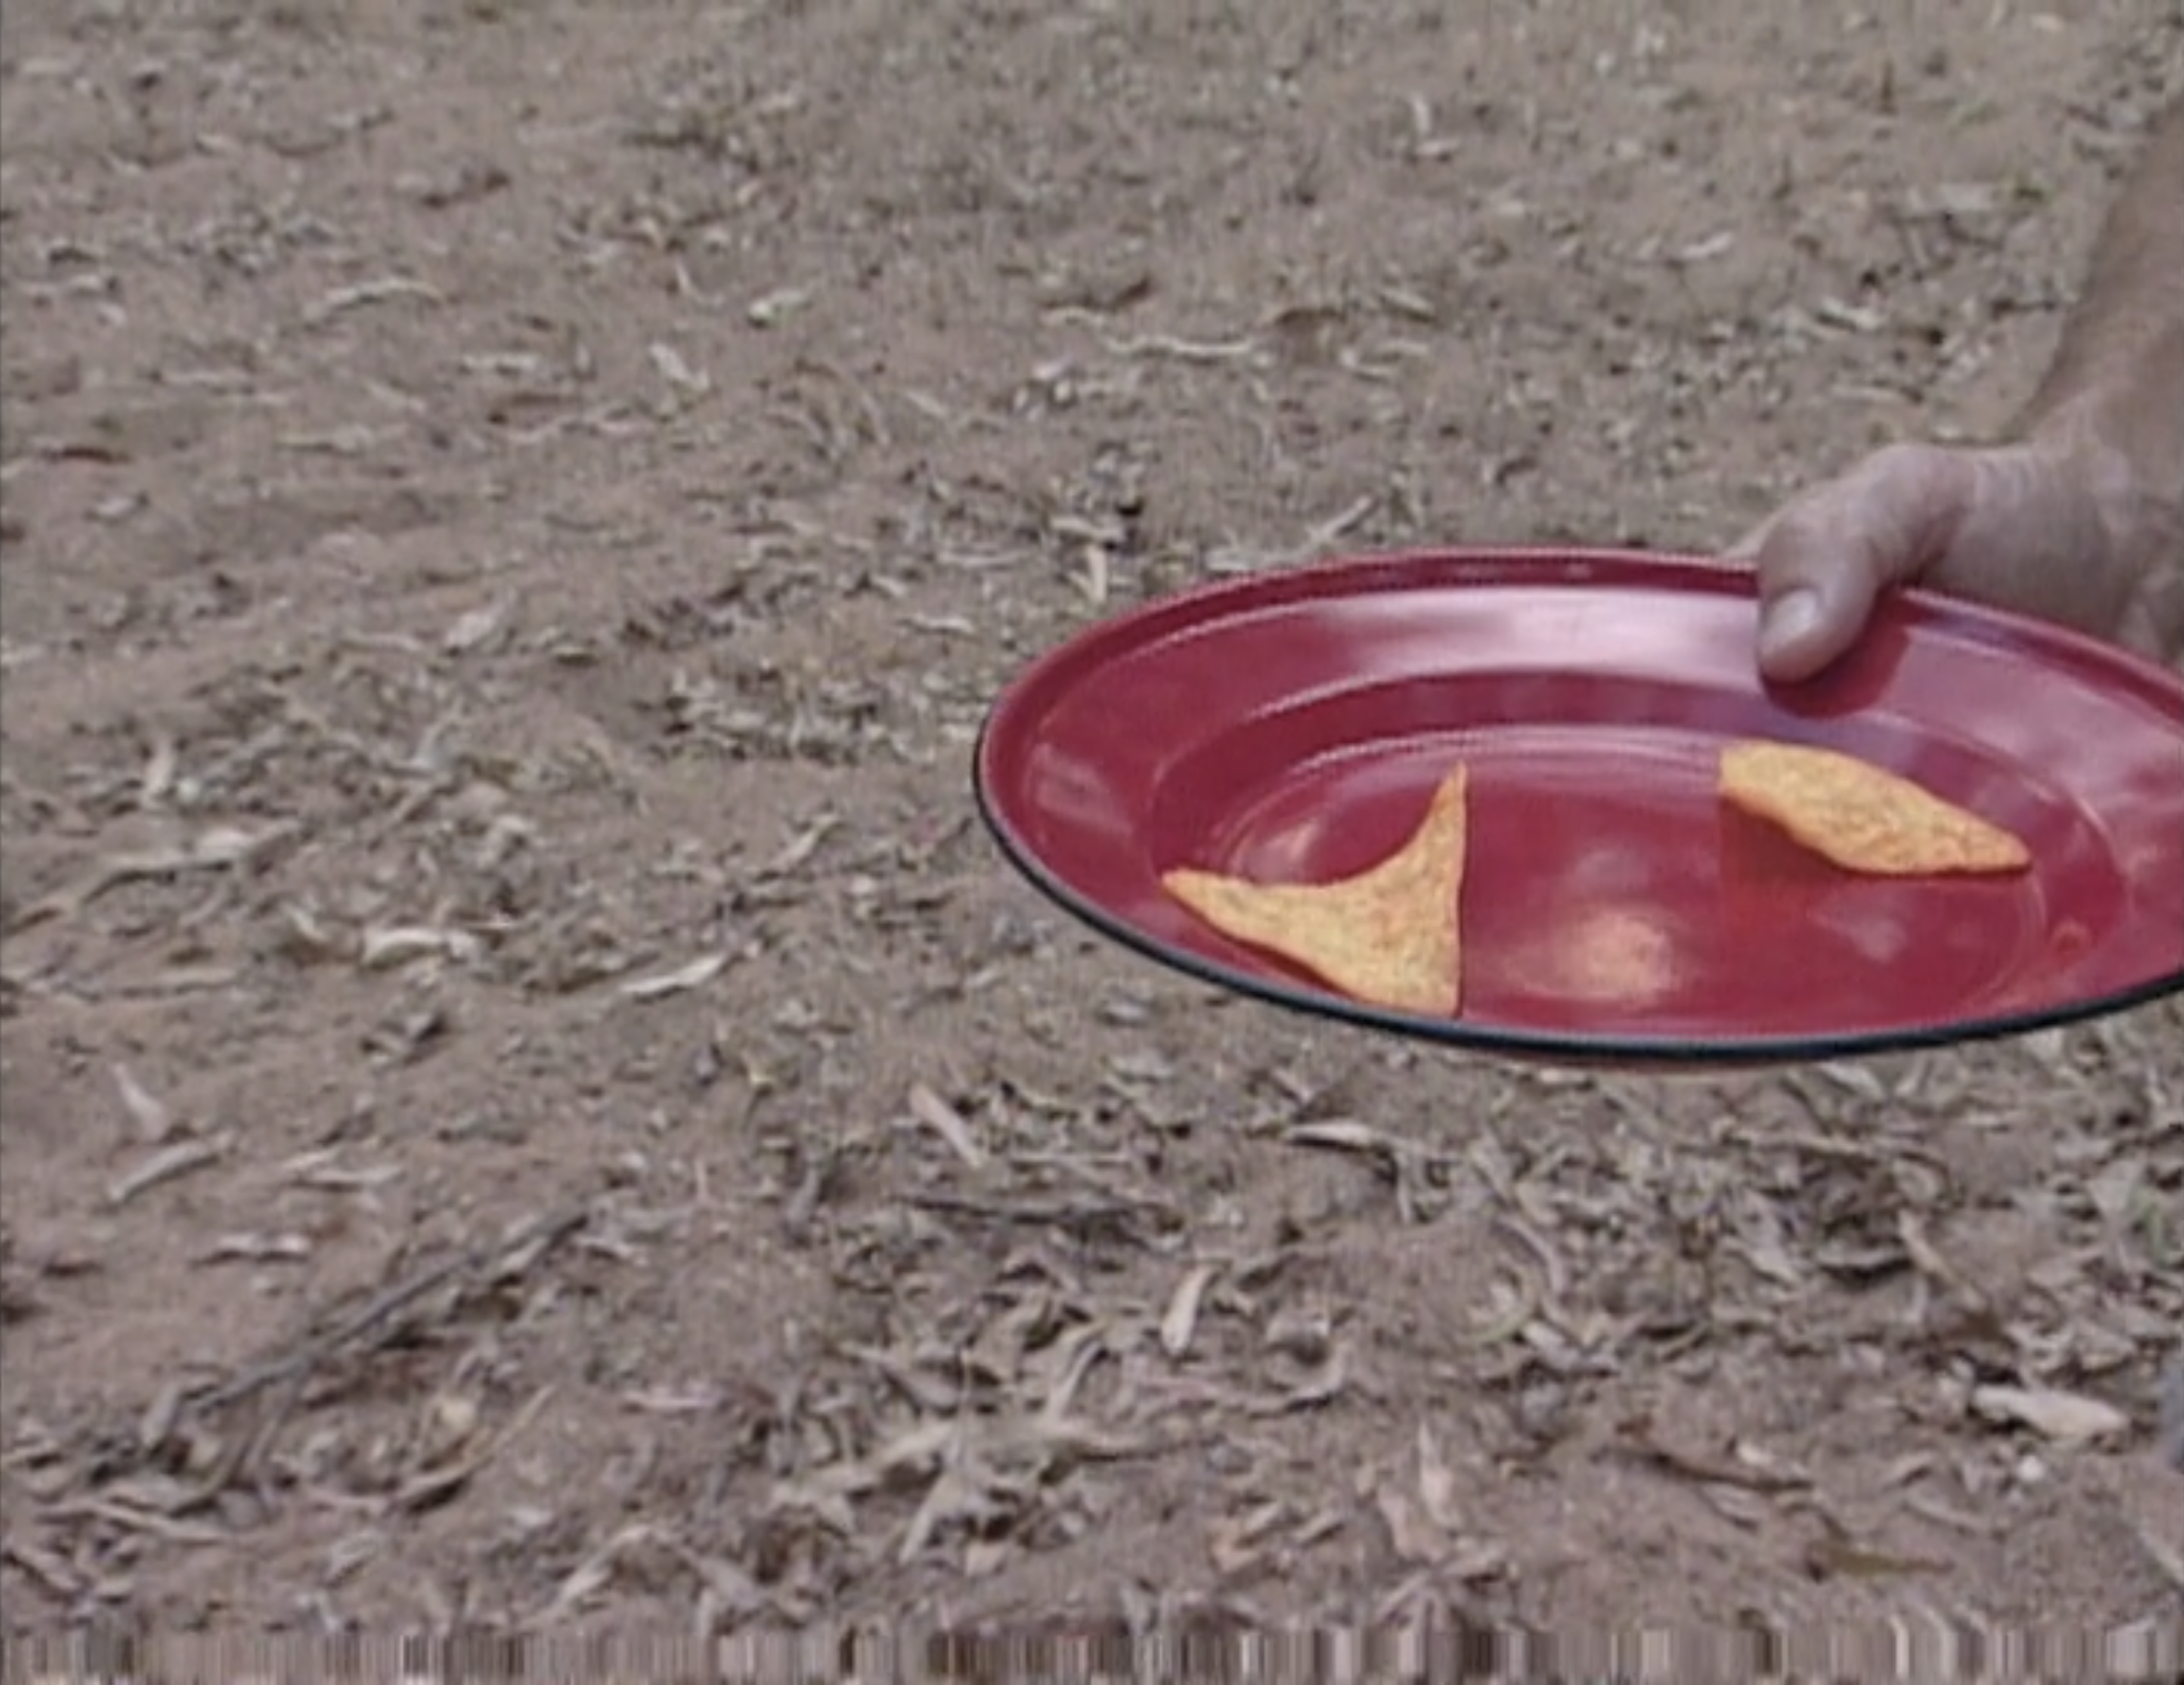 Jeff Probst holds a red plate with two Doritos on it